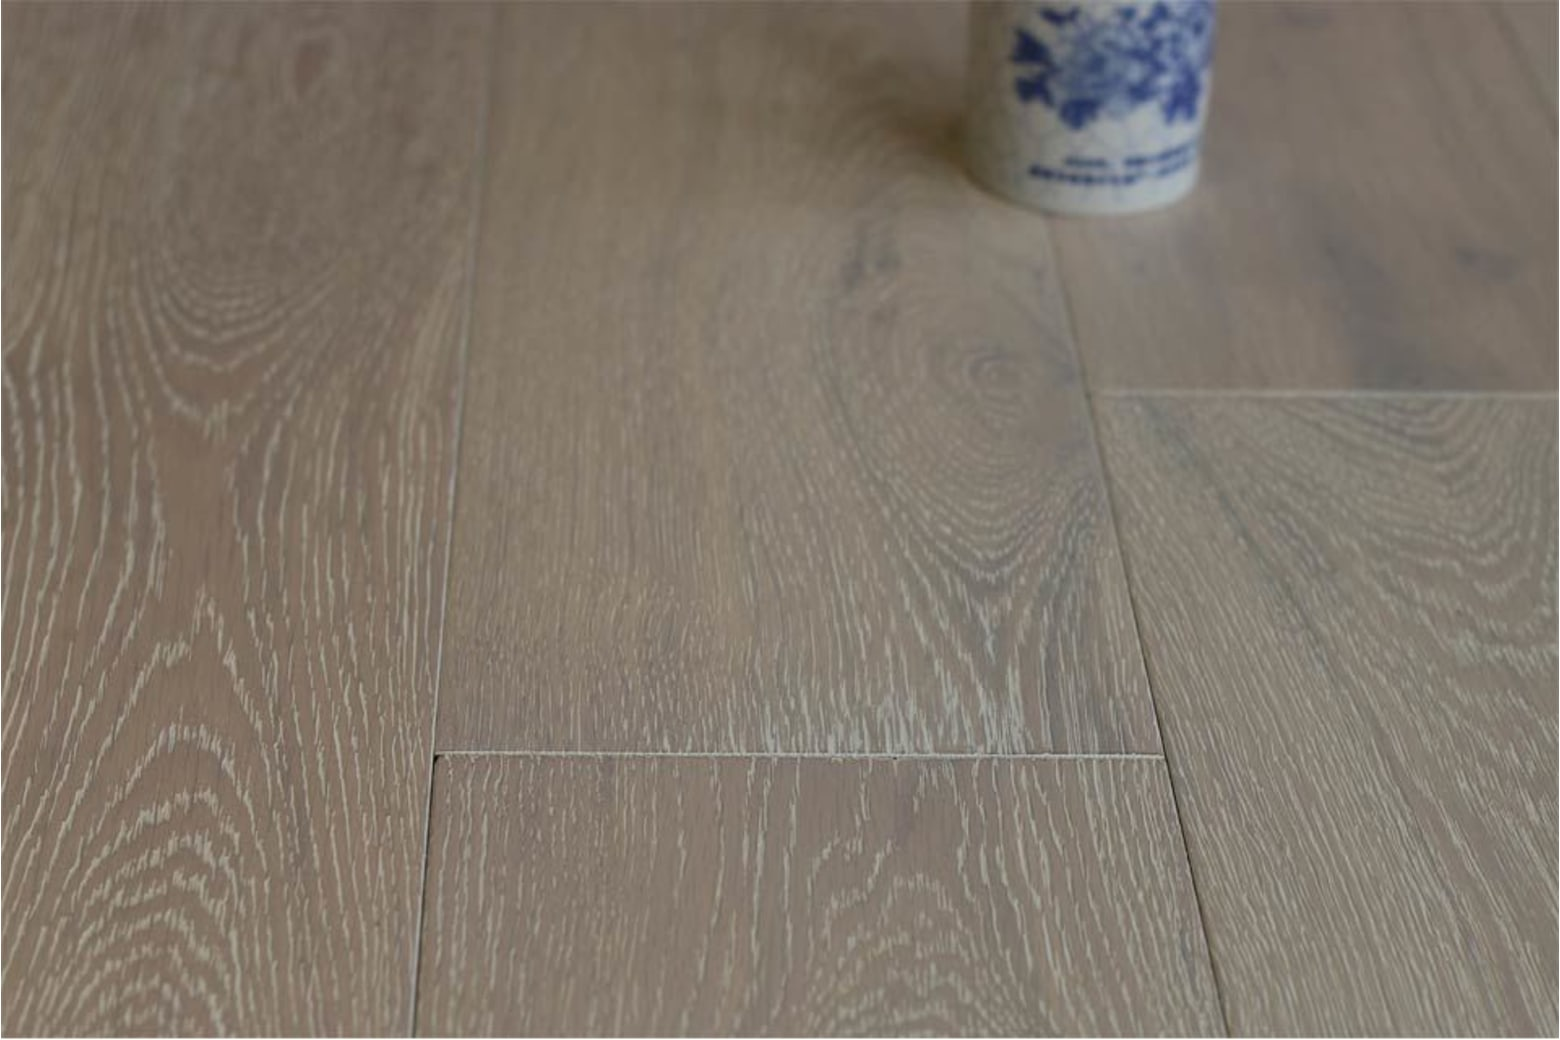 Natural Engineered Flooring Oak Brushed White UV Oiled Two 15/4mm By 220mm By 2200mm